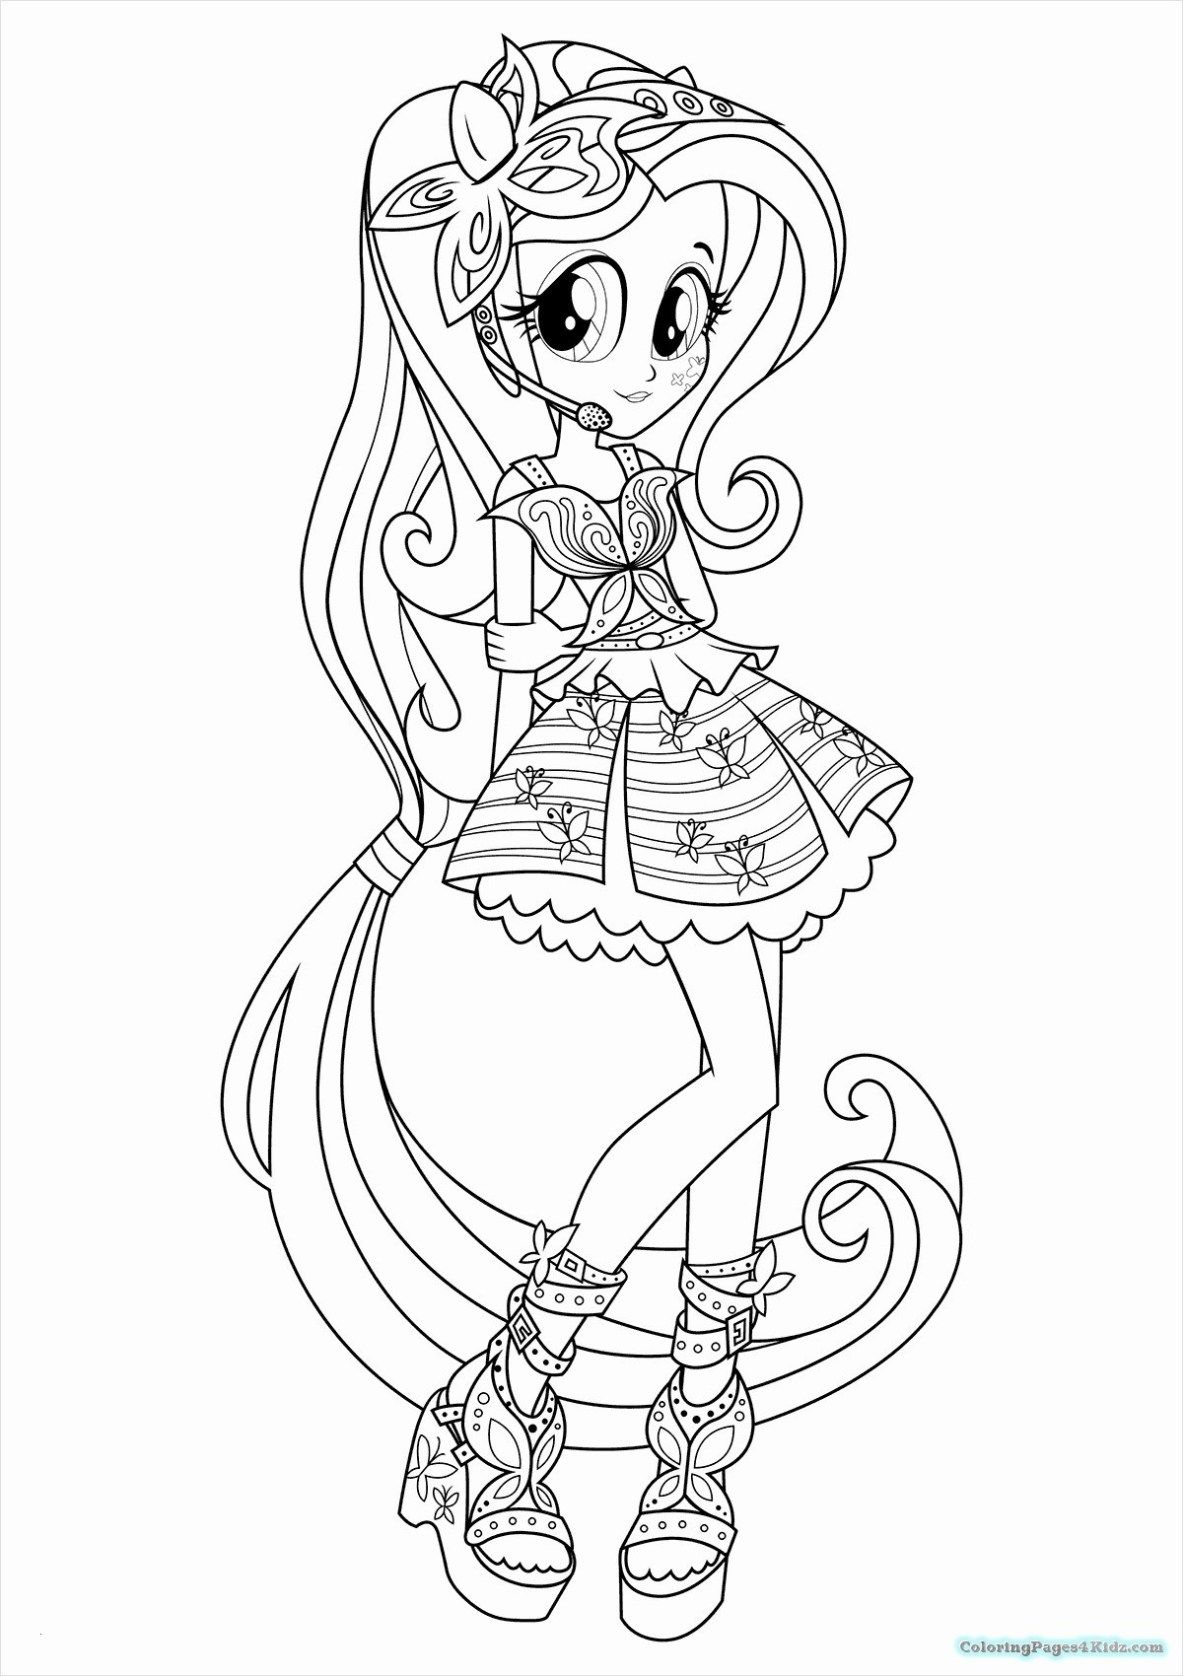 My Little Pony Equestria Girl Coloring Pages My Little Pony Equestria Girls Coloring Pages Awesome Collection Entitlementtrap Com In 2020 My Little Pony Coloring Princess Coloring Pages Horse Coloring Pages